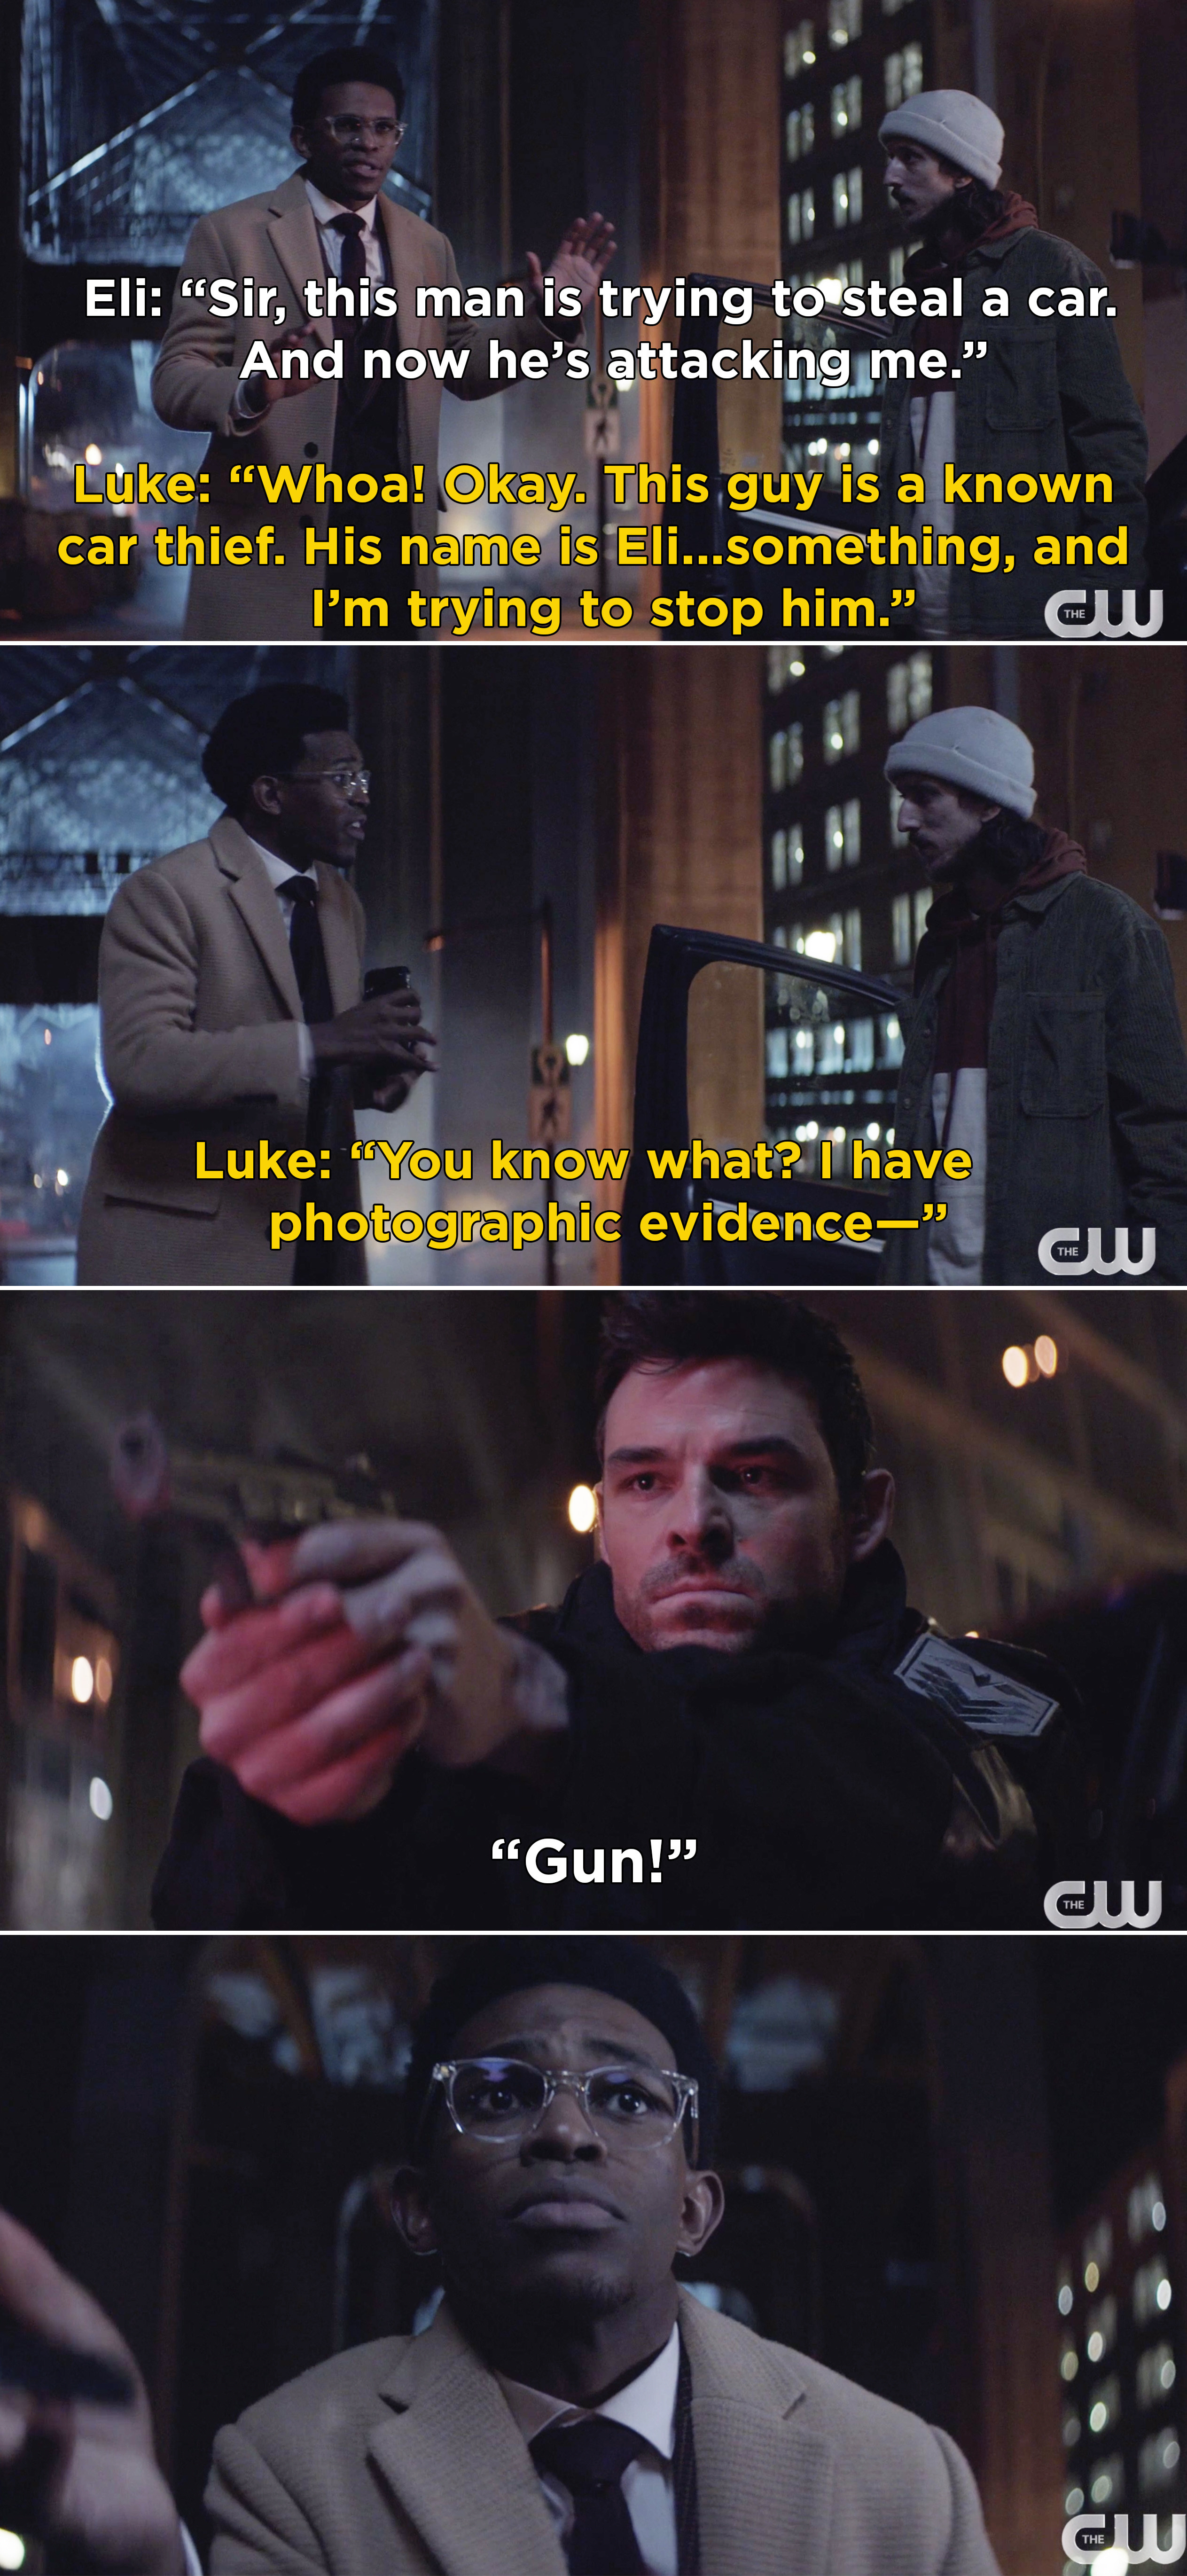 Luke explaining that Eli is a known carjacker, and then The Crow shooting Luke when he takes out his cellphone